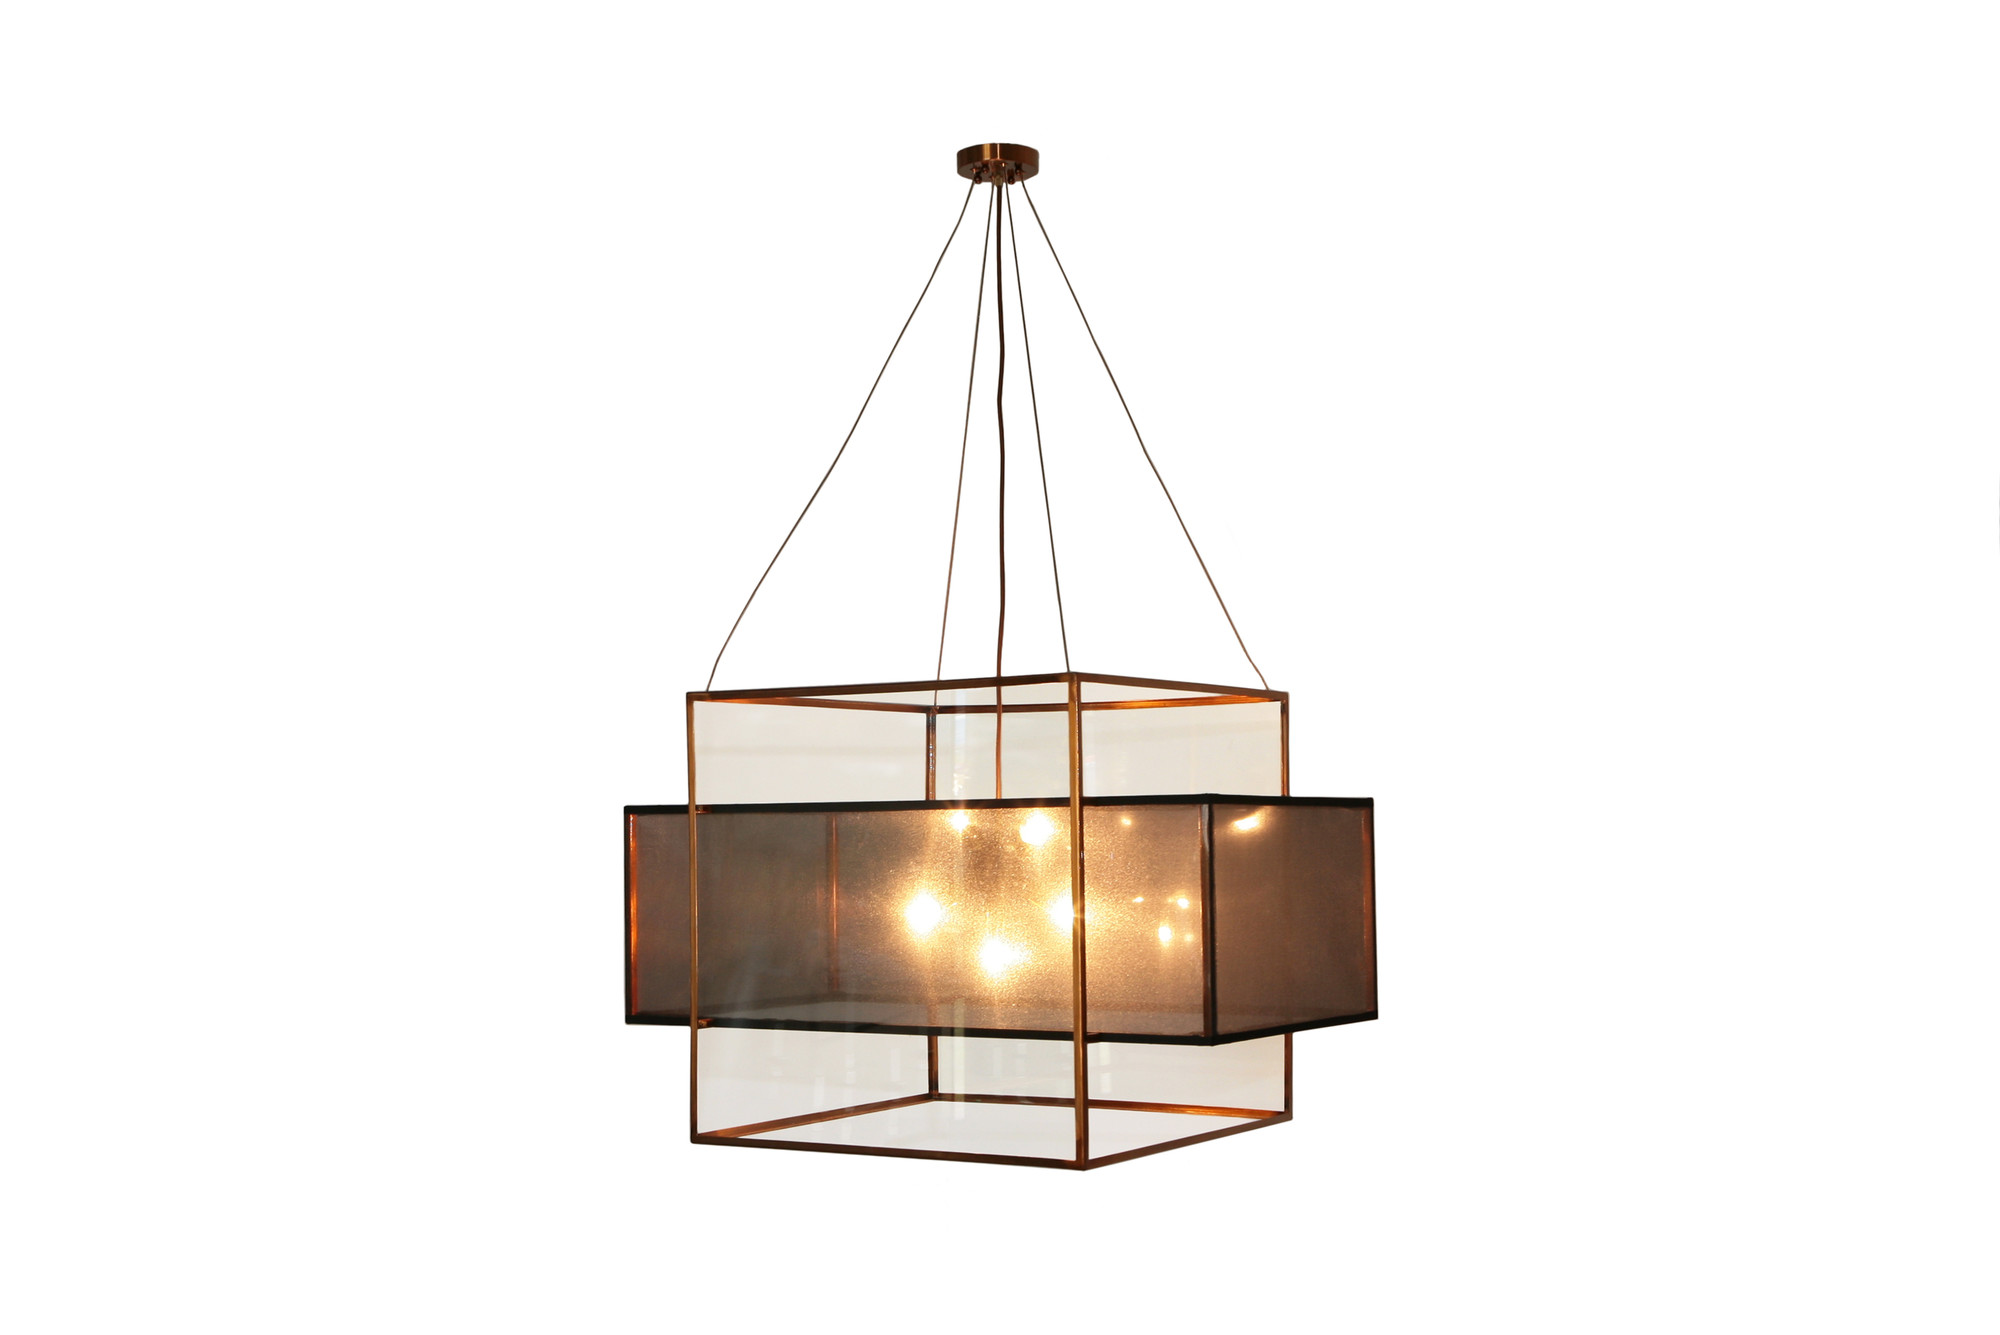 Shaynna blaze black copper chandelier temple webster sku owco1537 shaynna blaze black copper chandelier is also sometimes listed under the following manufacturer numbers sha203 aloadofball Choice Image